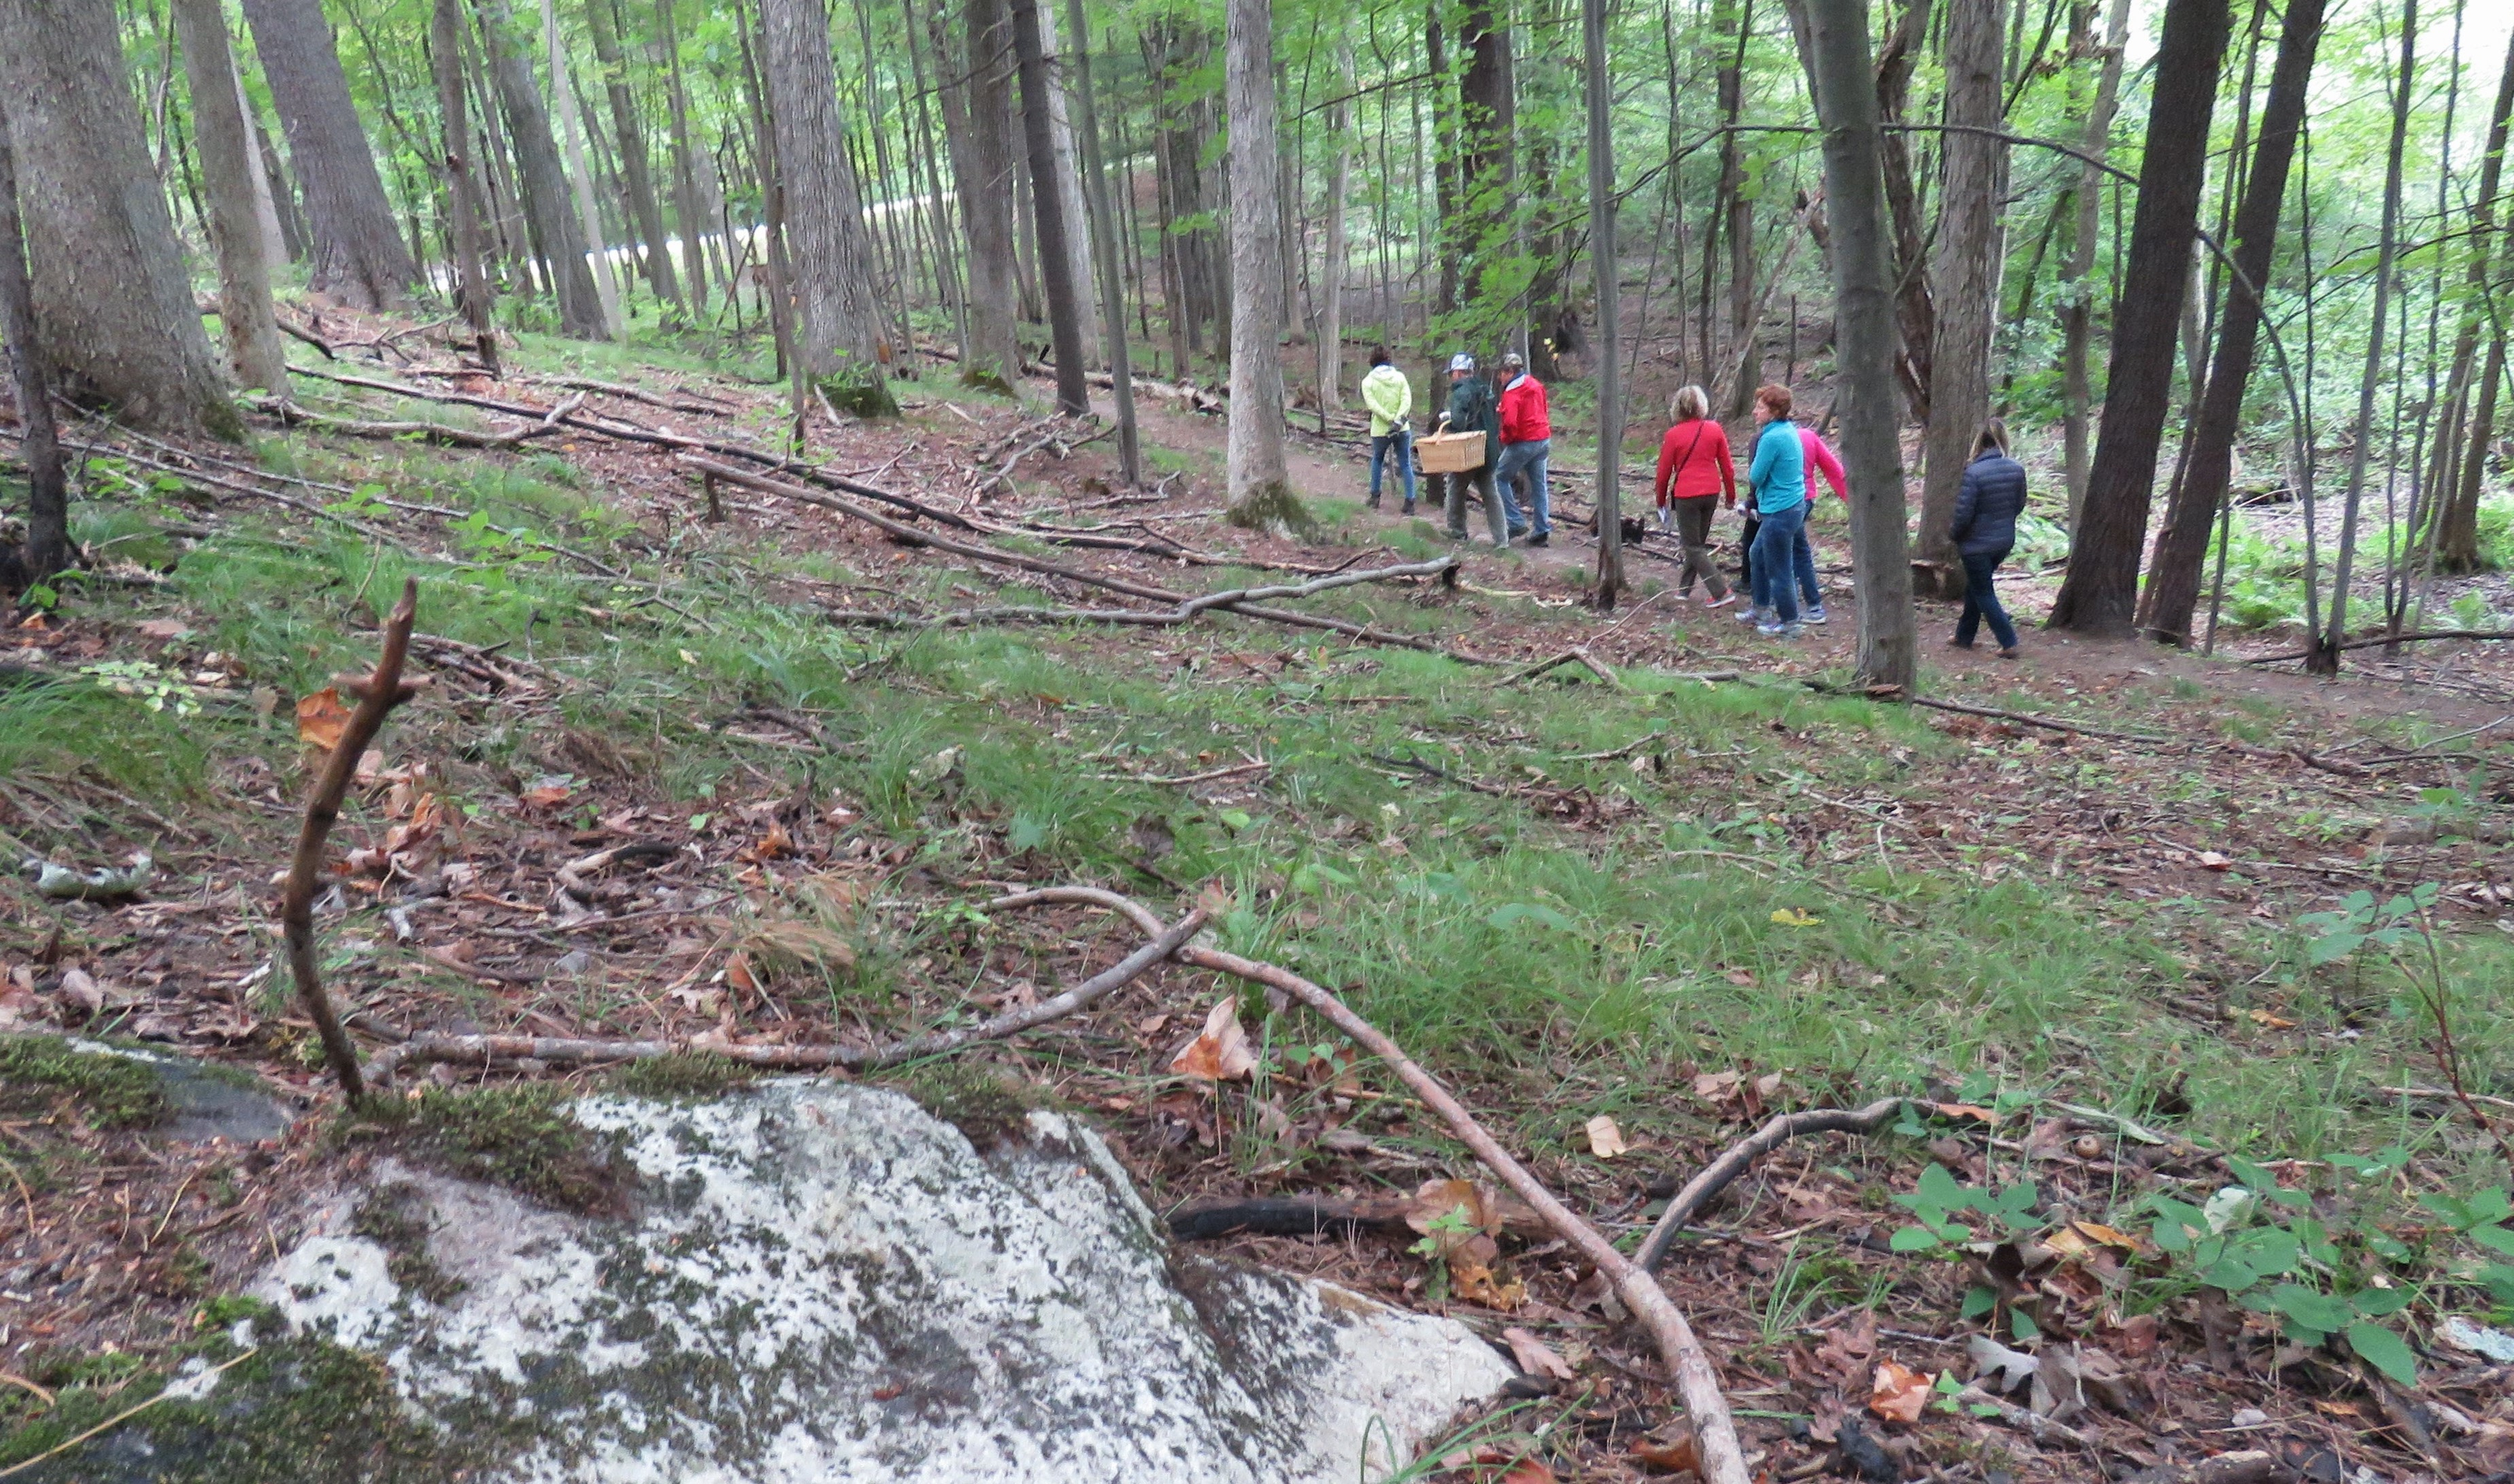 A group of people walk along a trail foraging for mushrooms on an overcast day.